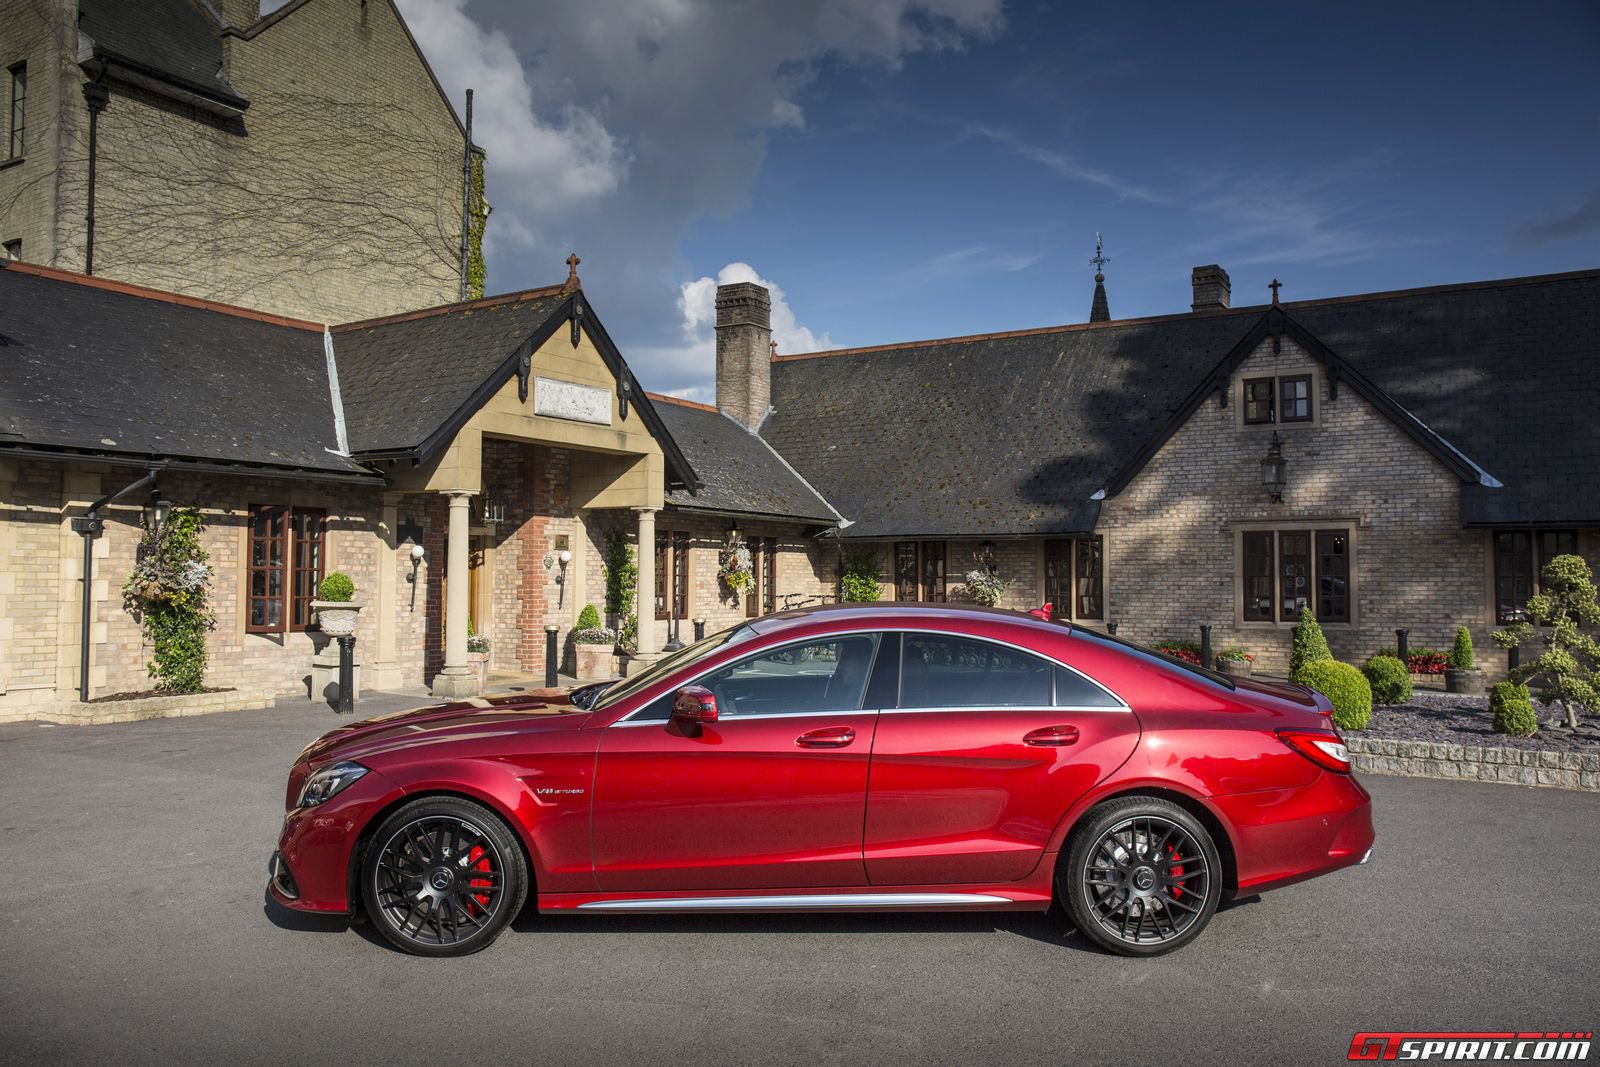 inside the new 2015 mercedes benz cls is just as exclusive and opulent as youd expect from any high end mercedes benz the most prominent addition is